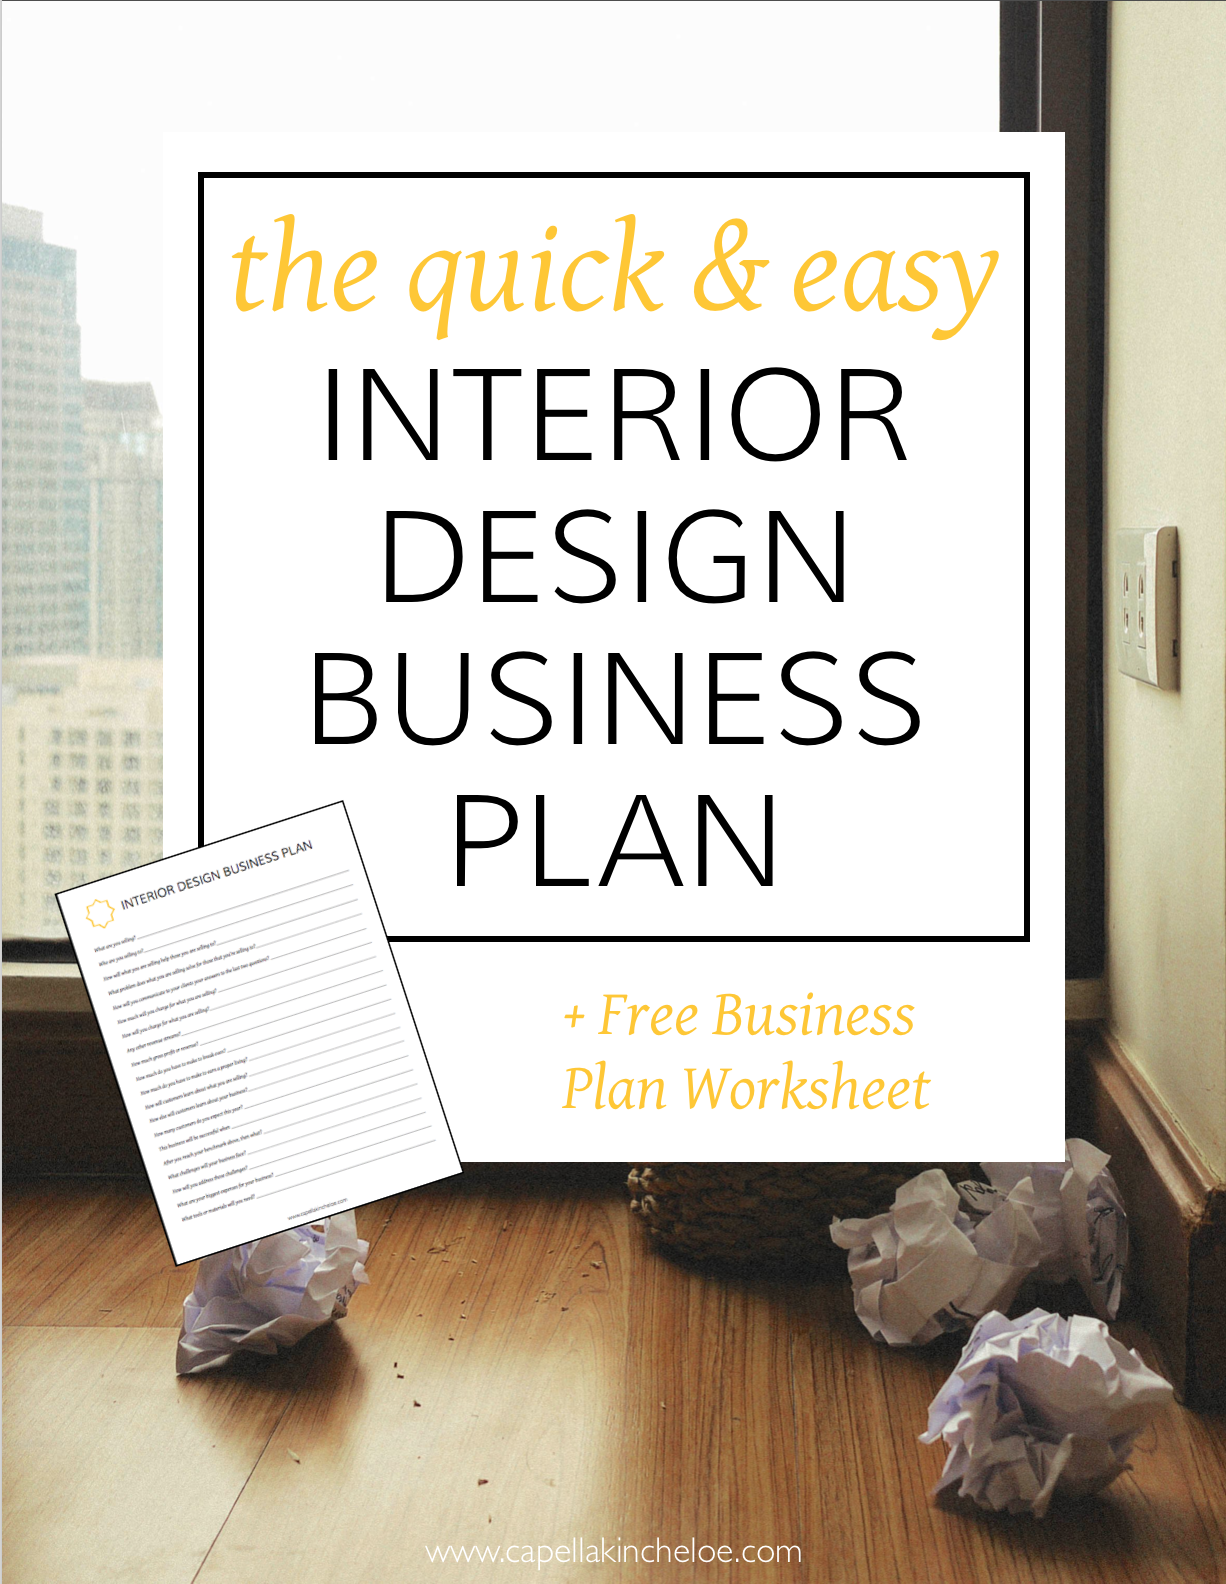 Business Plans Shouldn T Be Hard This Quick And Easy Interior